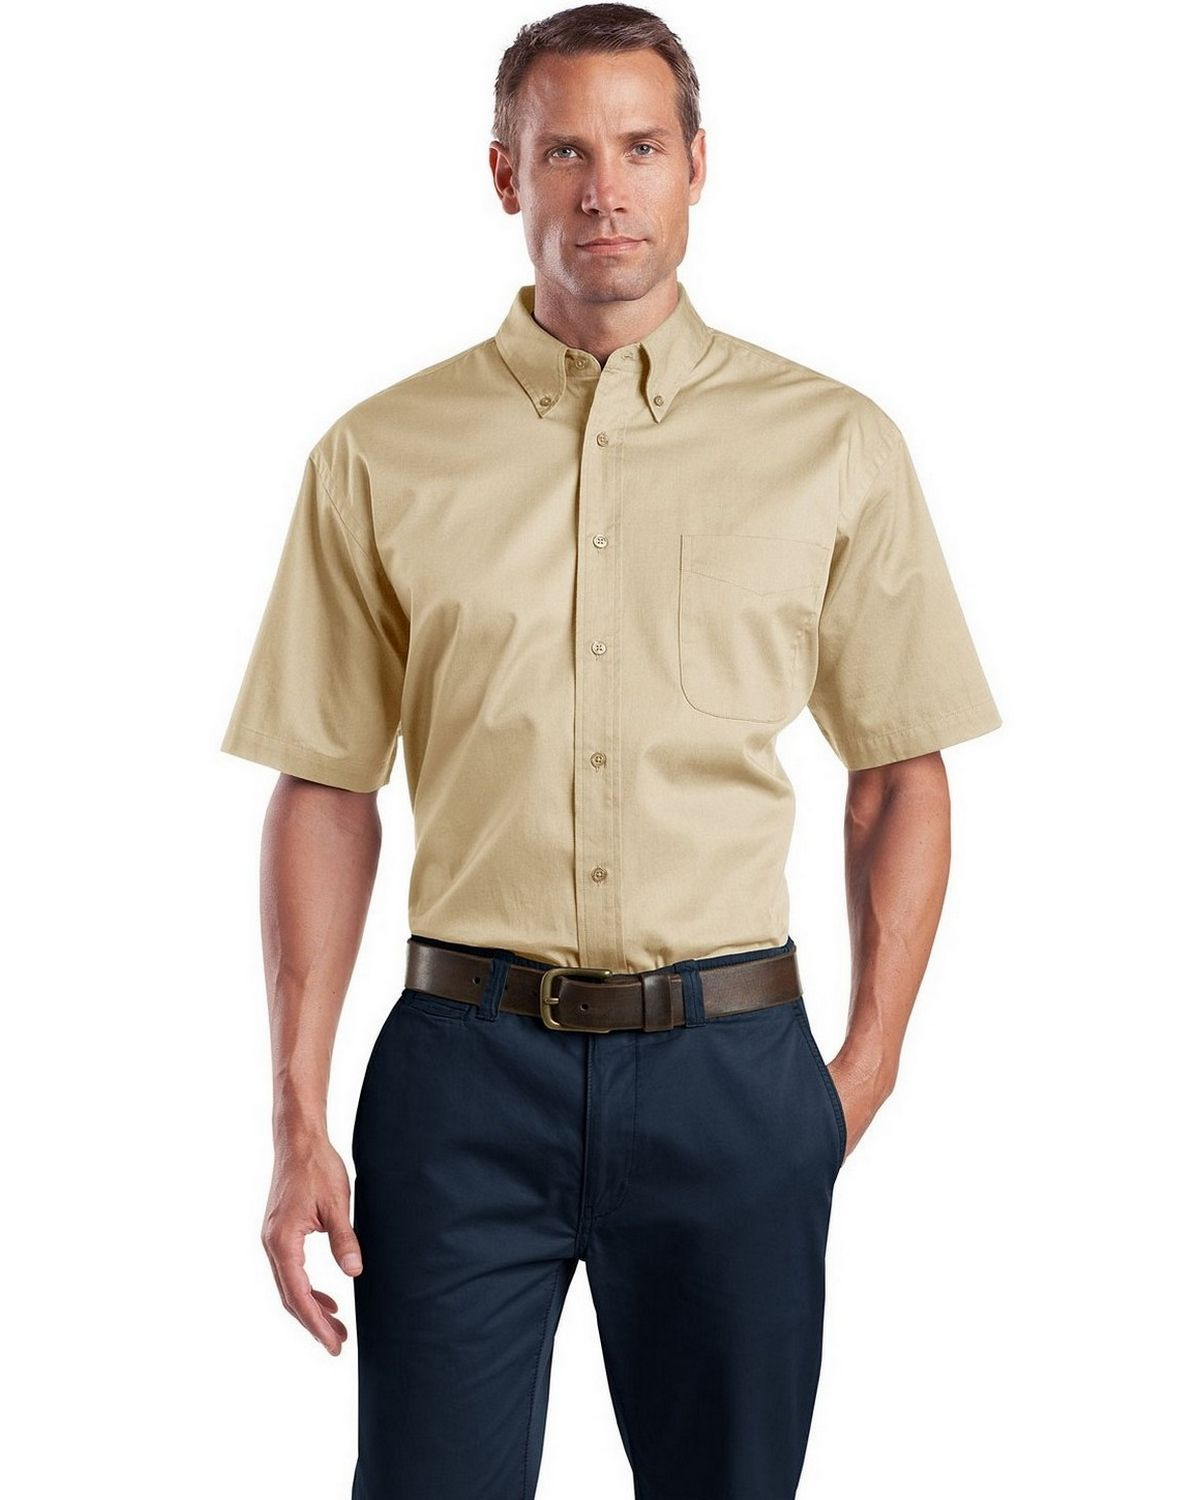 Cornerstone SP18 Short Sleeve SuperPro Twill Shirt